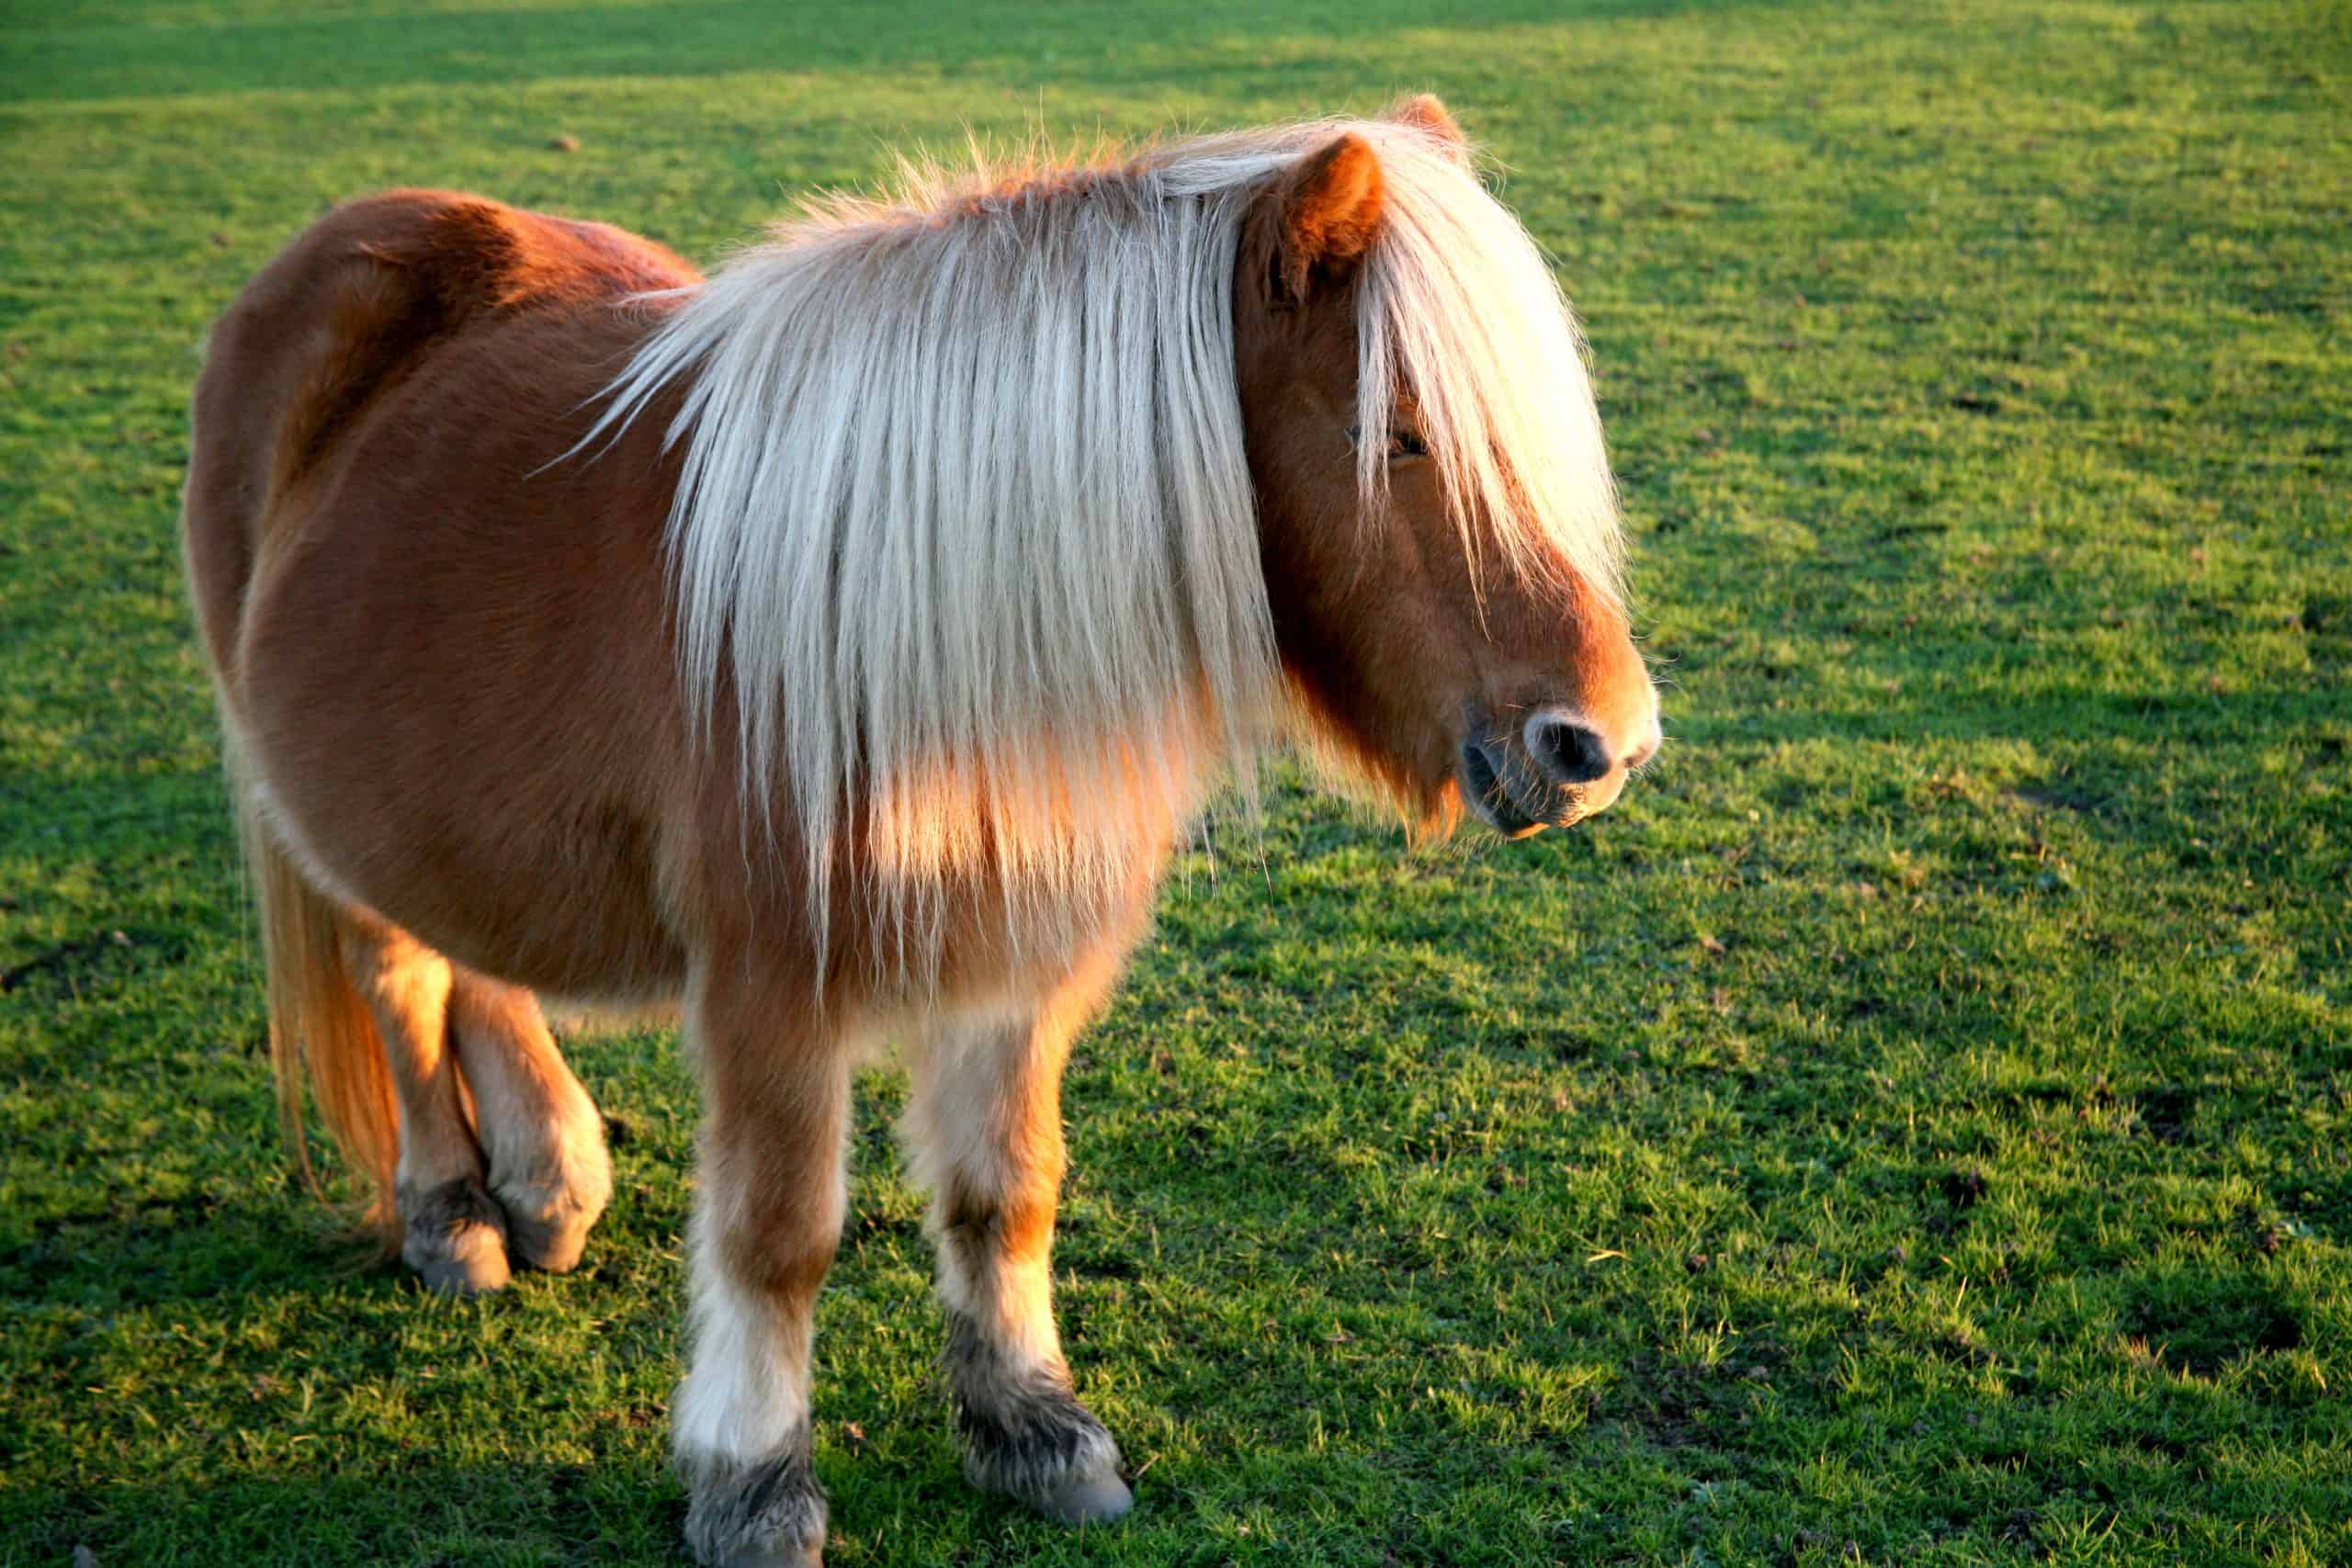 A brown shetland pony with white forelocks and a long white mane backlit by the evening sun on moorland of the New Forest, Hampshire, UK